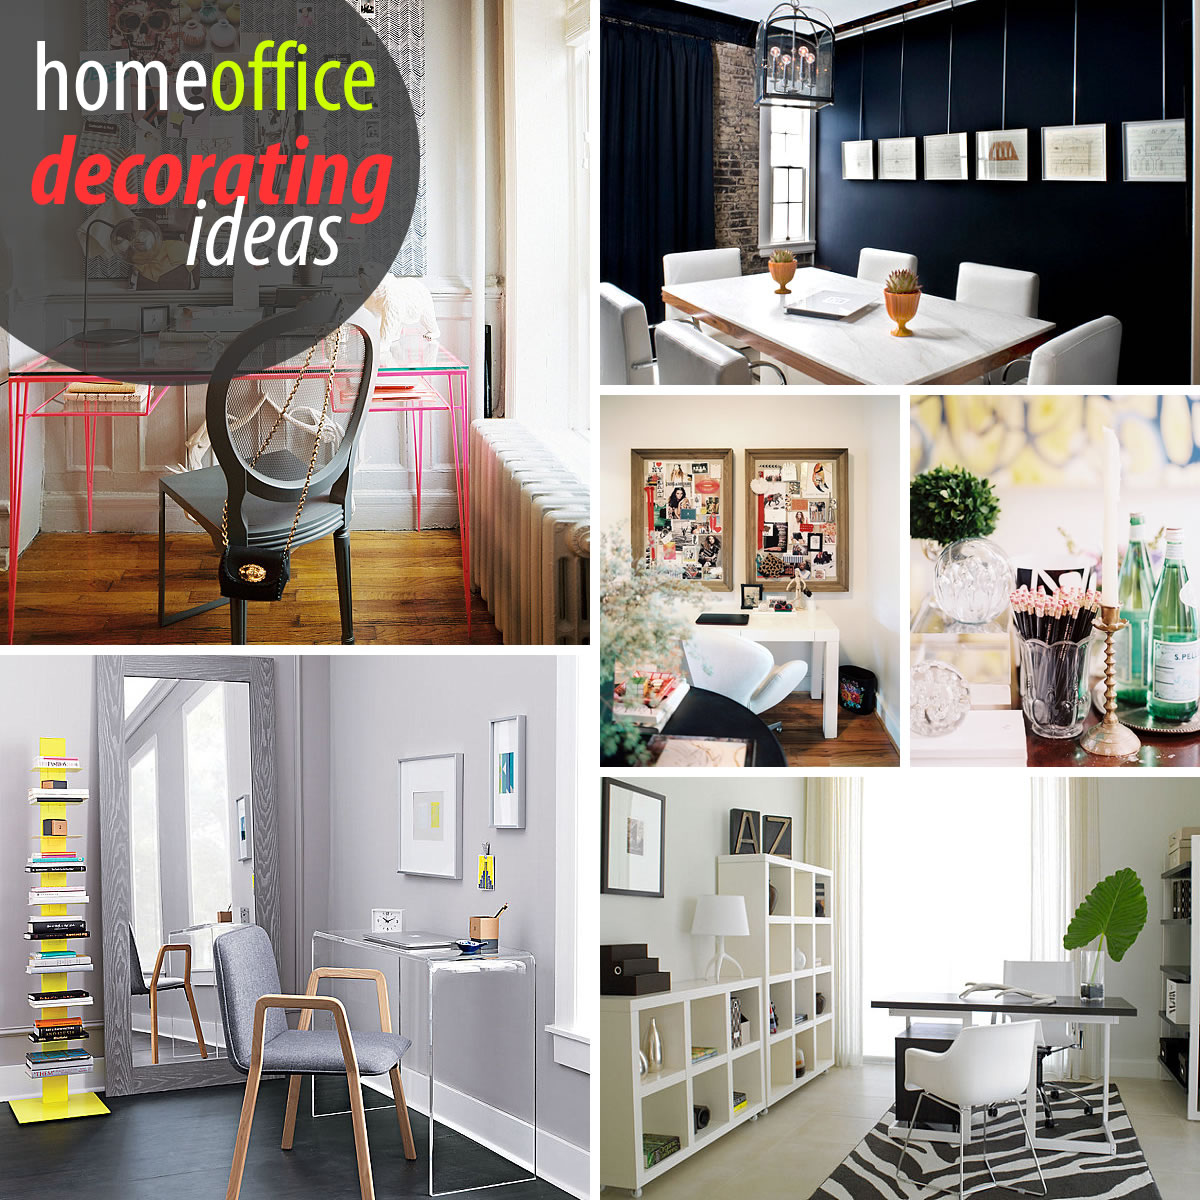 Creative home office decorating ideas for Home office design ideas photos